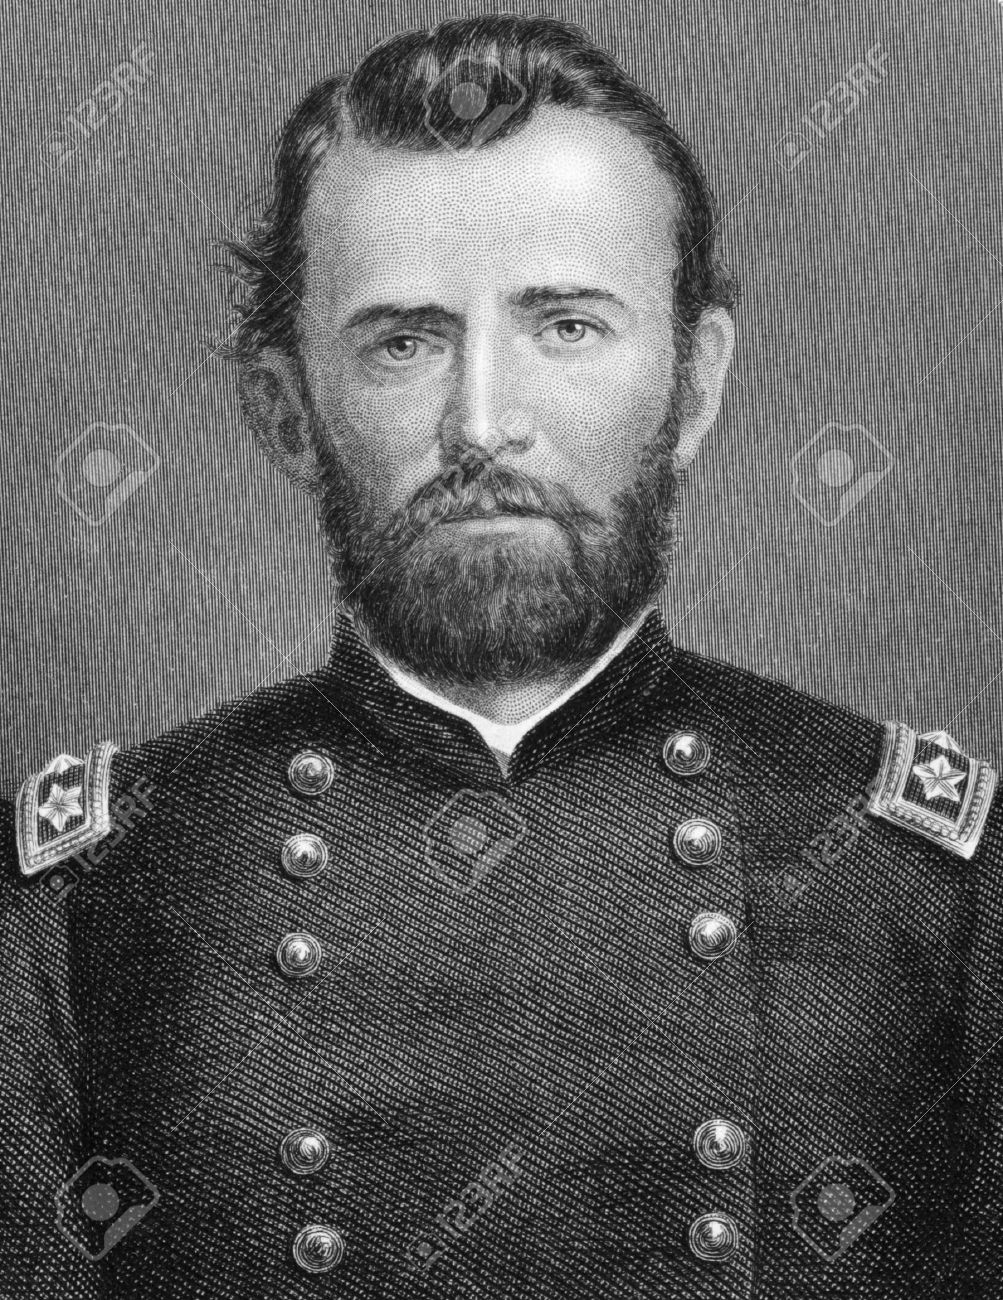 candyman royalty photos pictures images and stock ulysses s grant 1822 1885 on engraving from 1800s 18th president